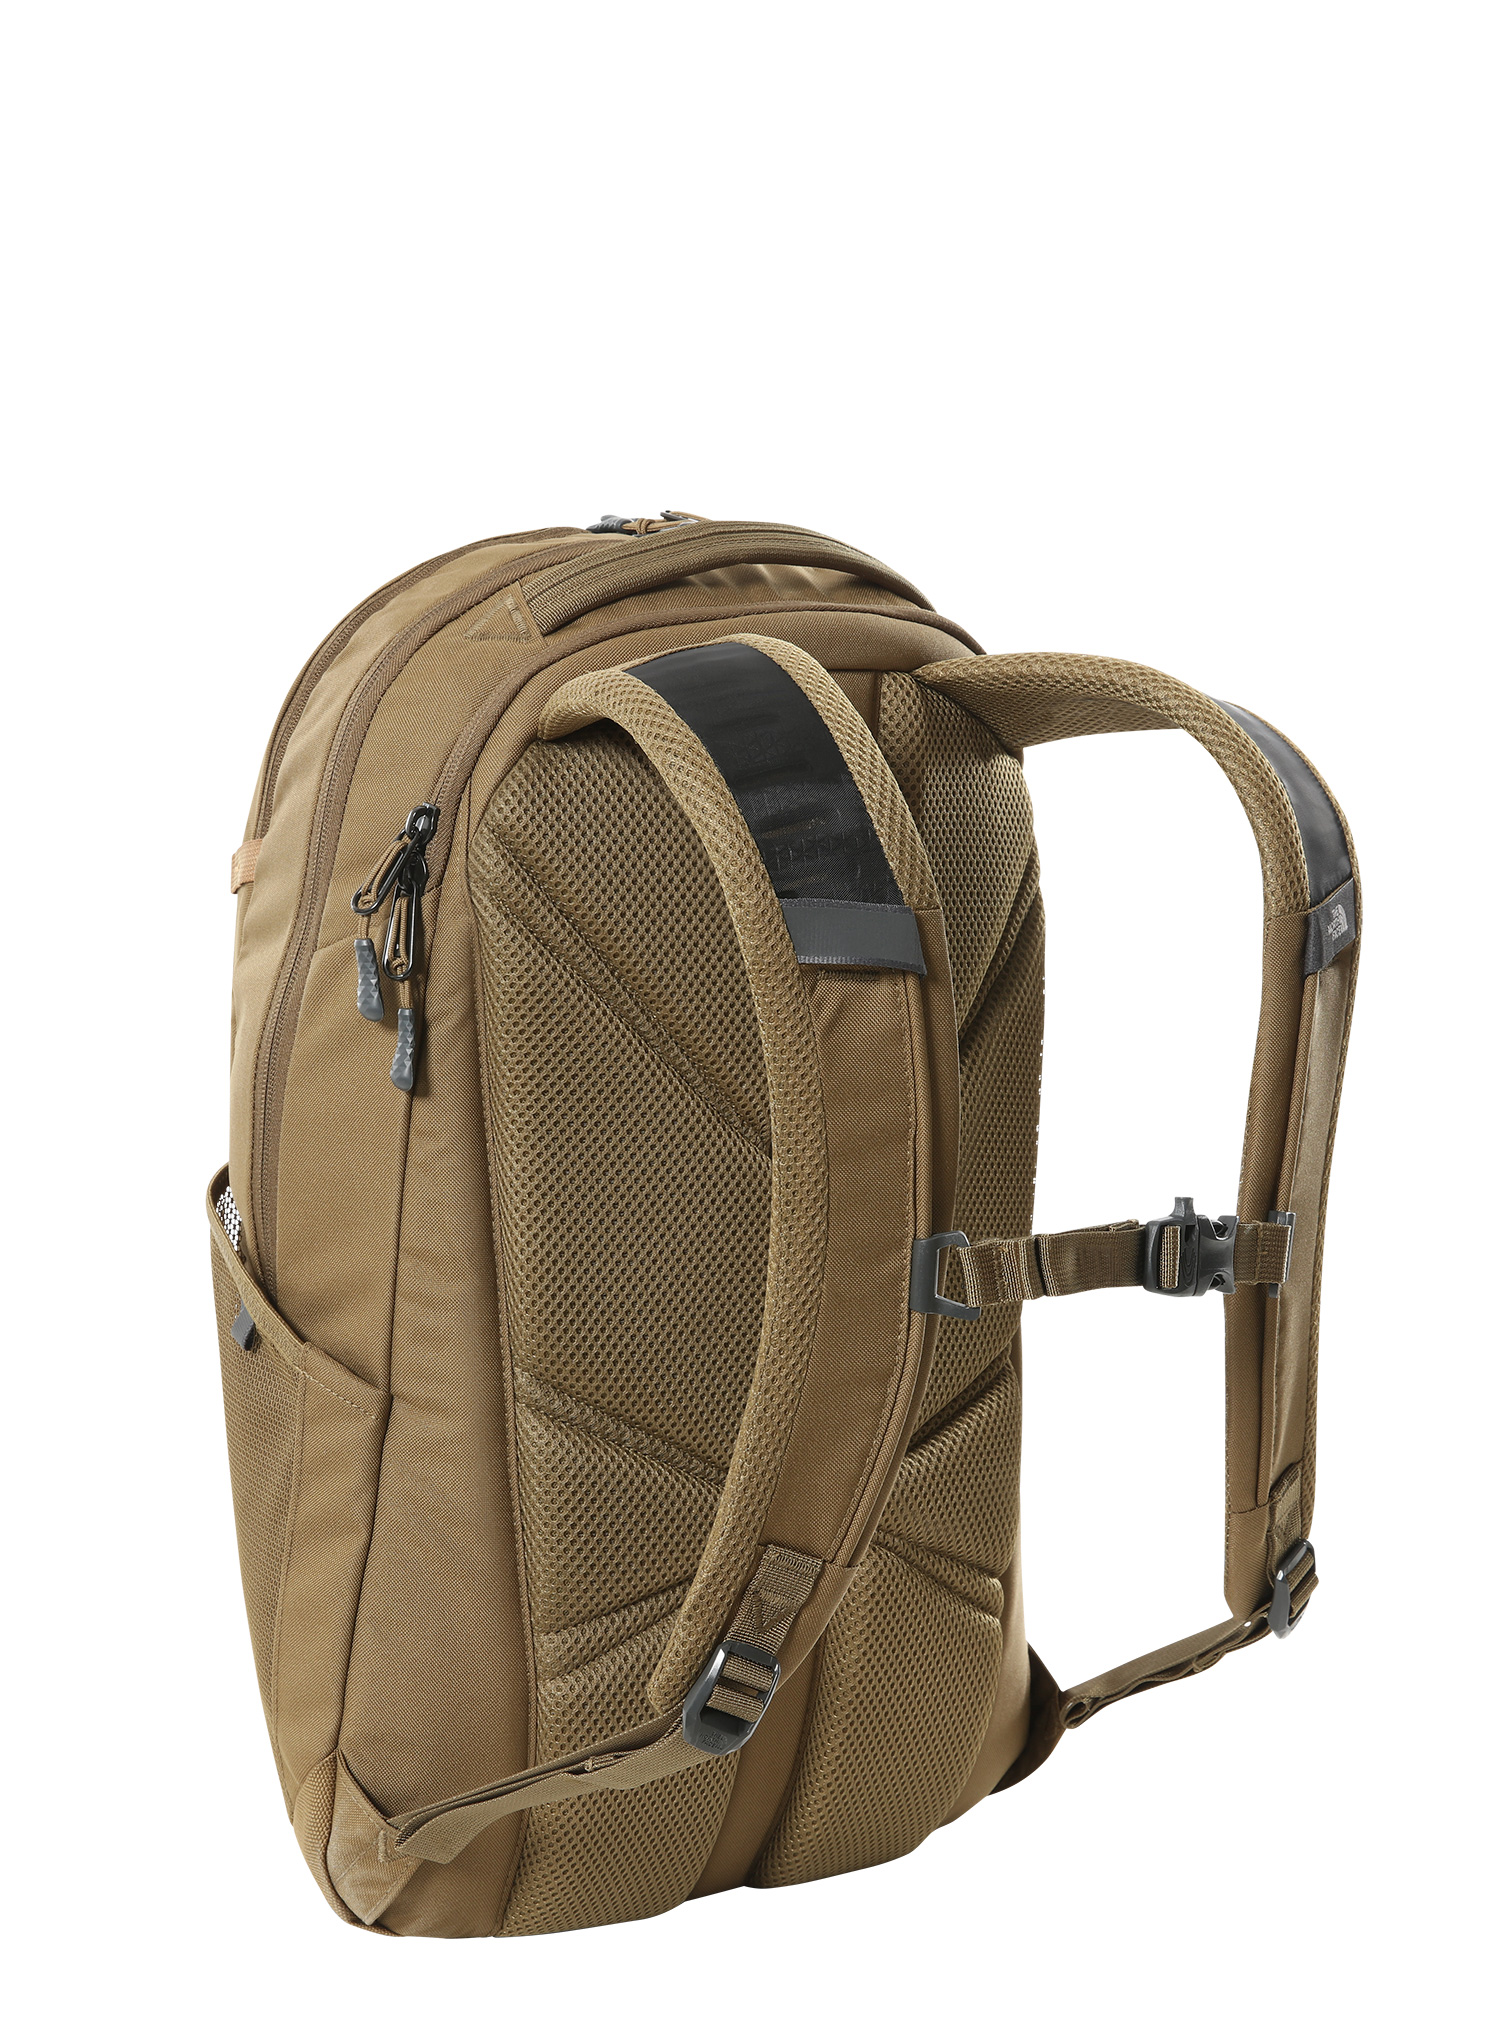 Plecak The North Face Cryptic - military olive/brown - zdjęcie nr. 2